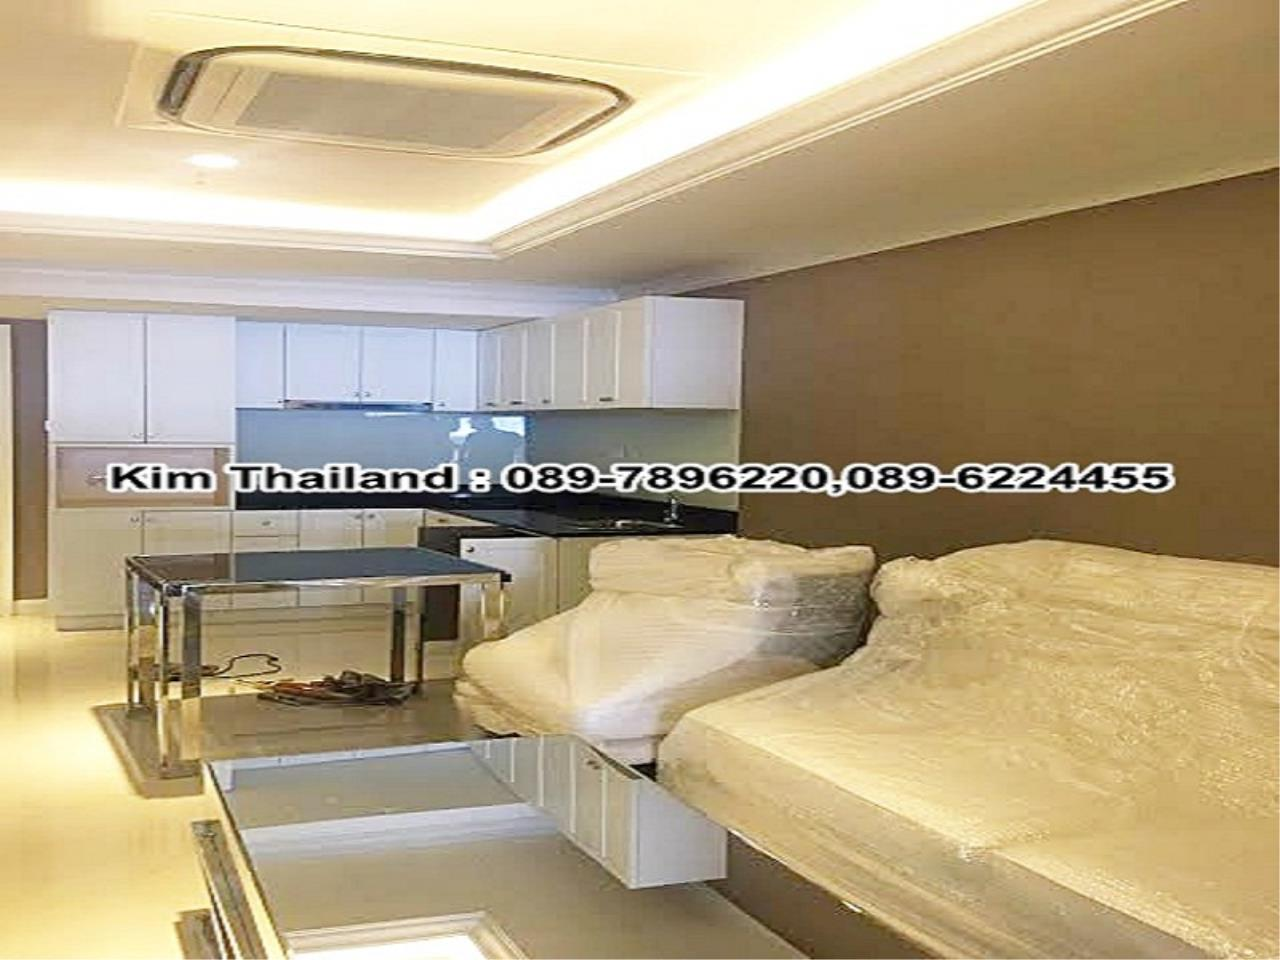 BKKcondorental Agency's For sale,State Tower Condominium., 73 sqm., 1 bedroom. Price 6 million baht. 1